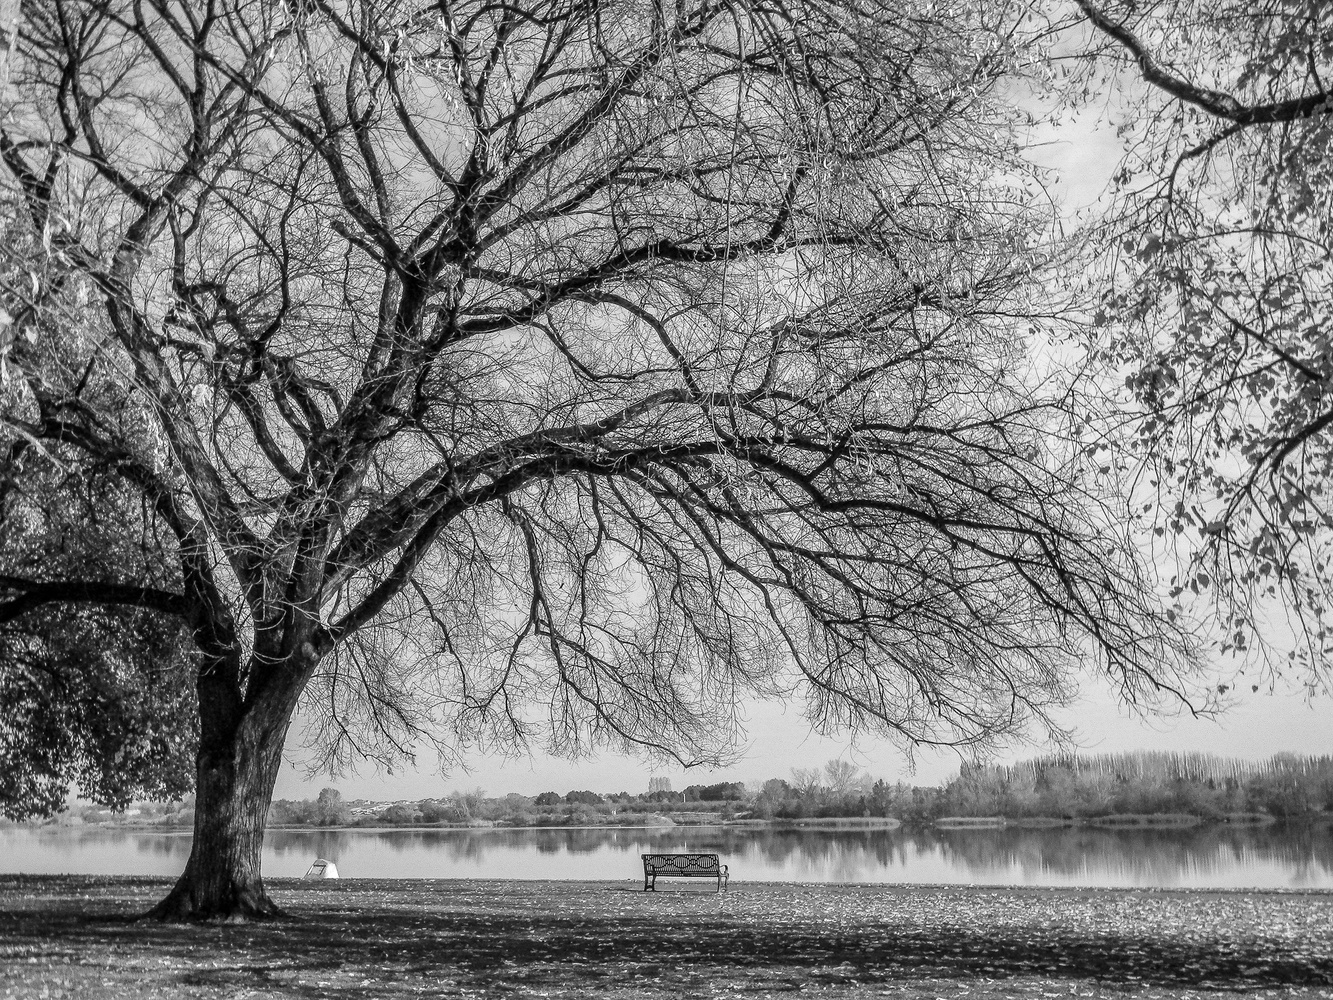 Empty bench by the river. by Chris Snyder